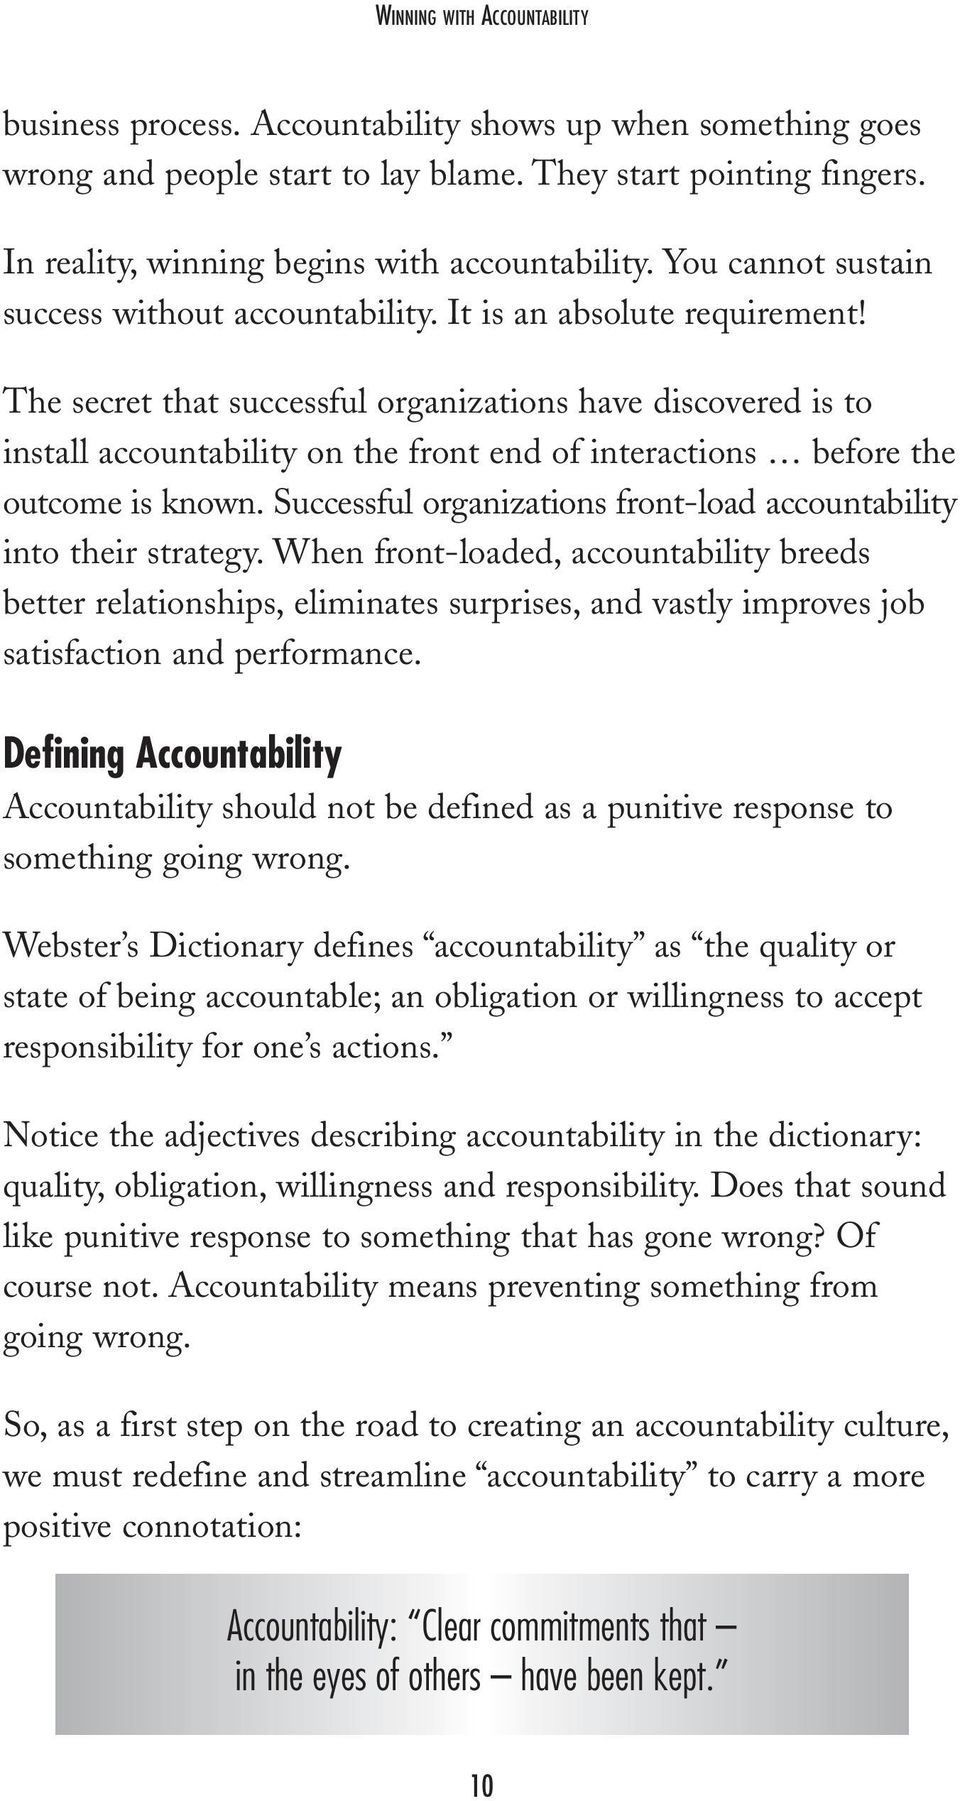 The secret that successful organizations have discovered is to install accountability on the front end of interactions before the outcome is known.